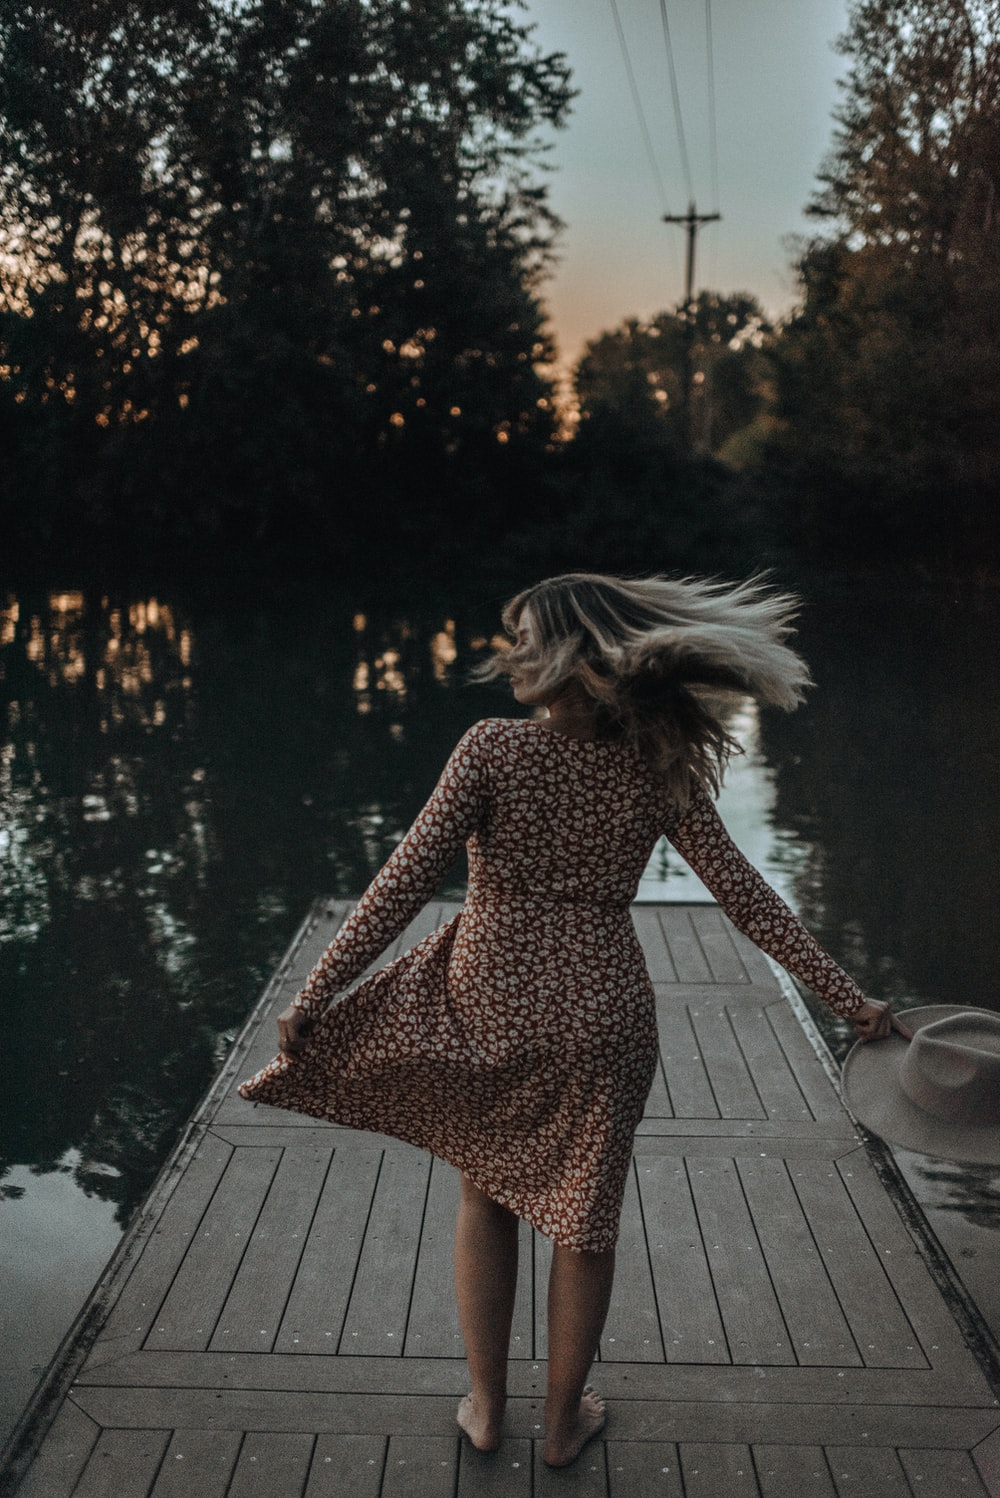 woman standing at a wooden dock